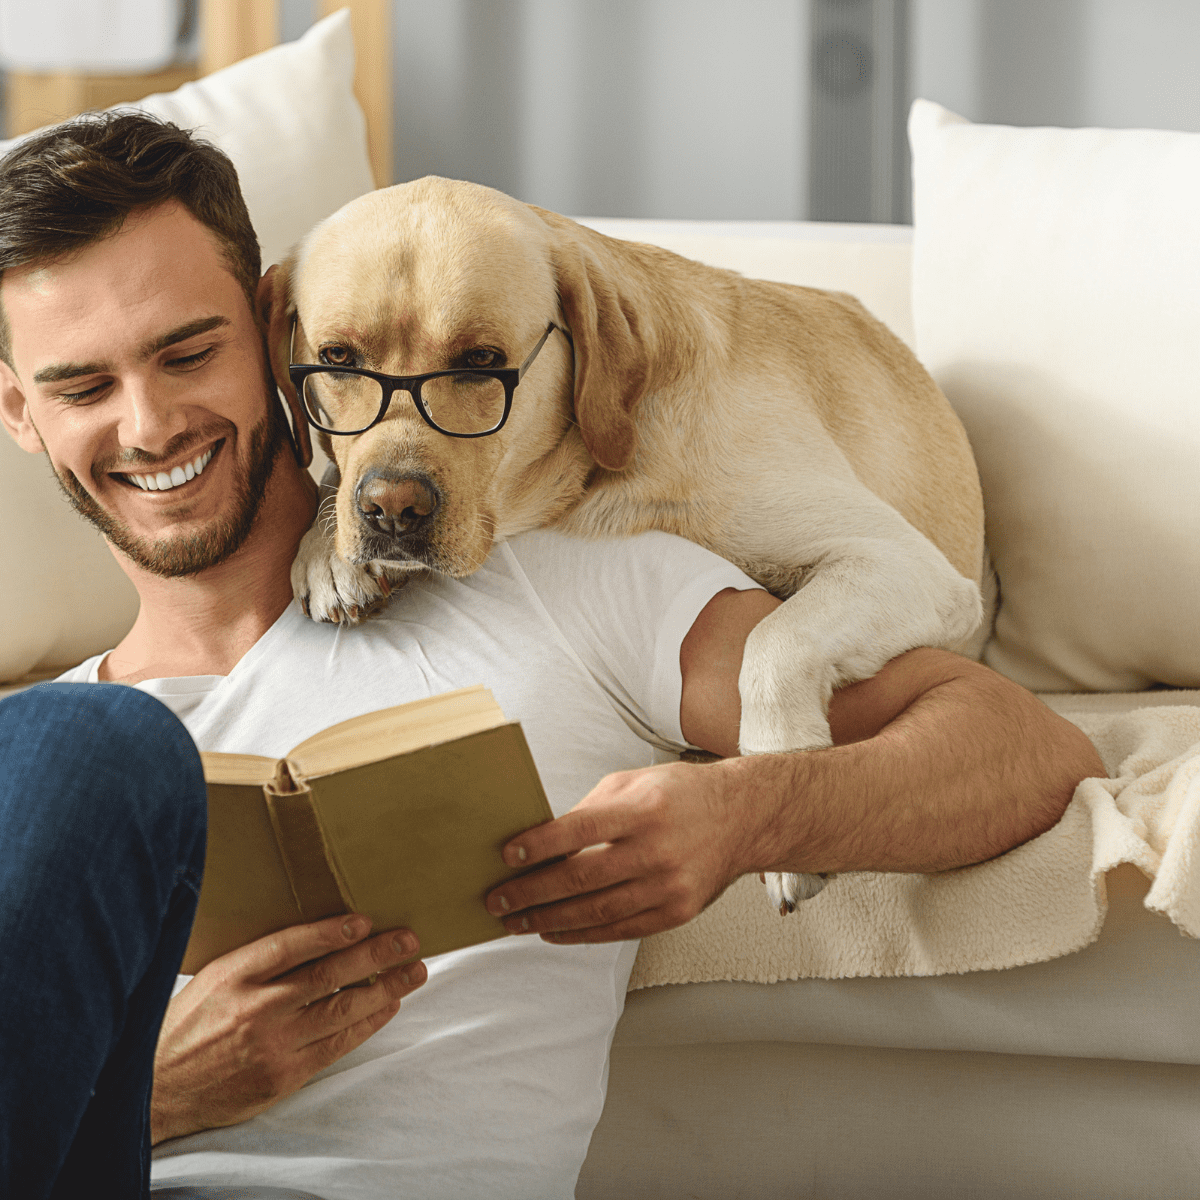 Dog reading with glasses